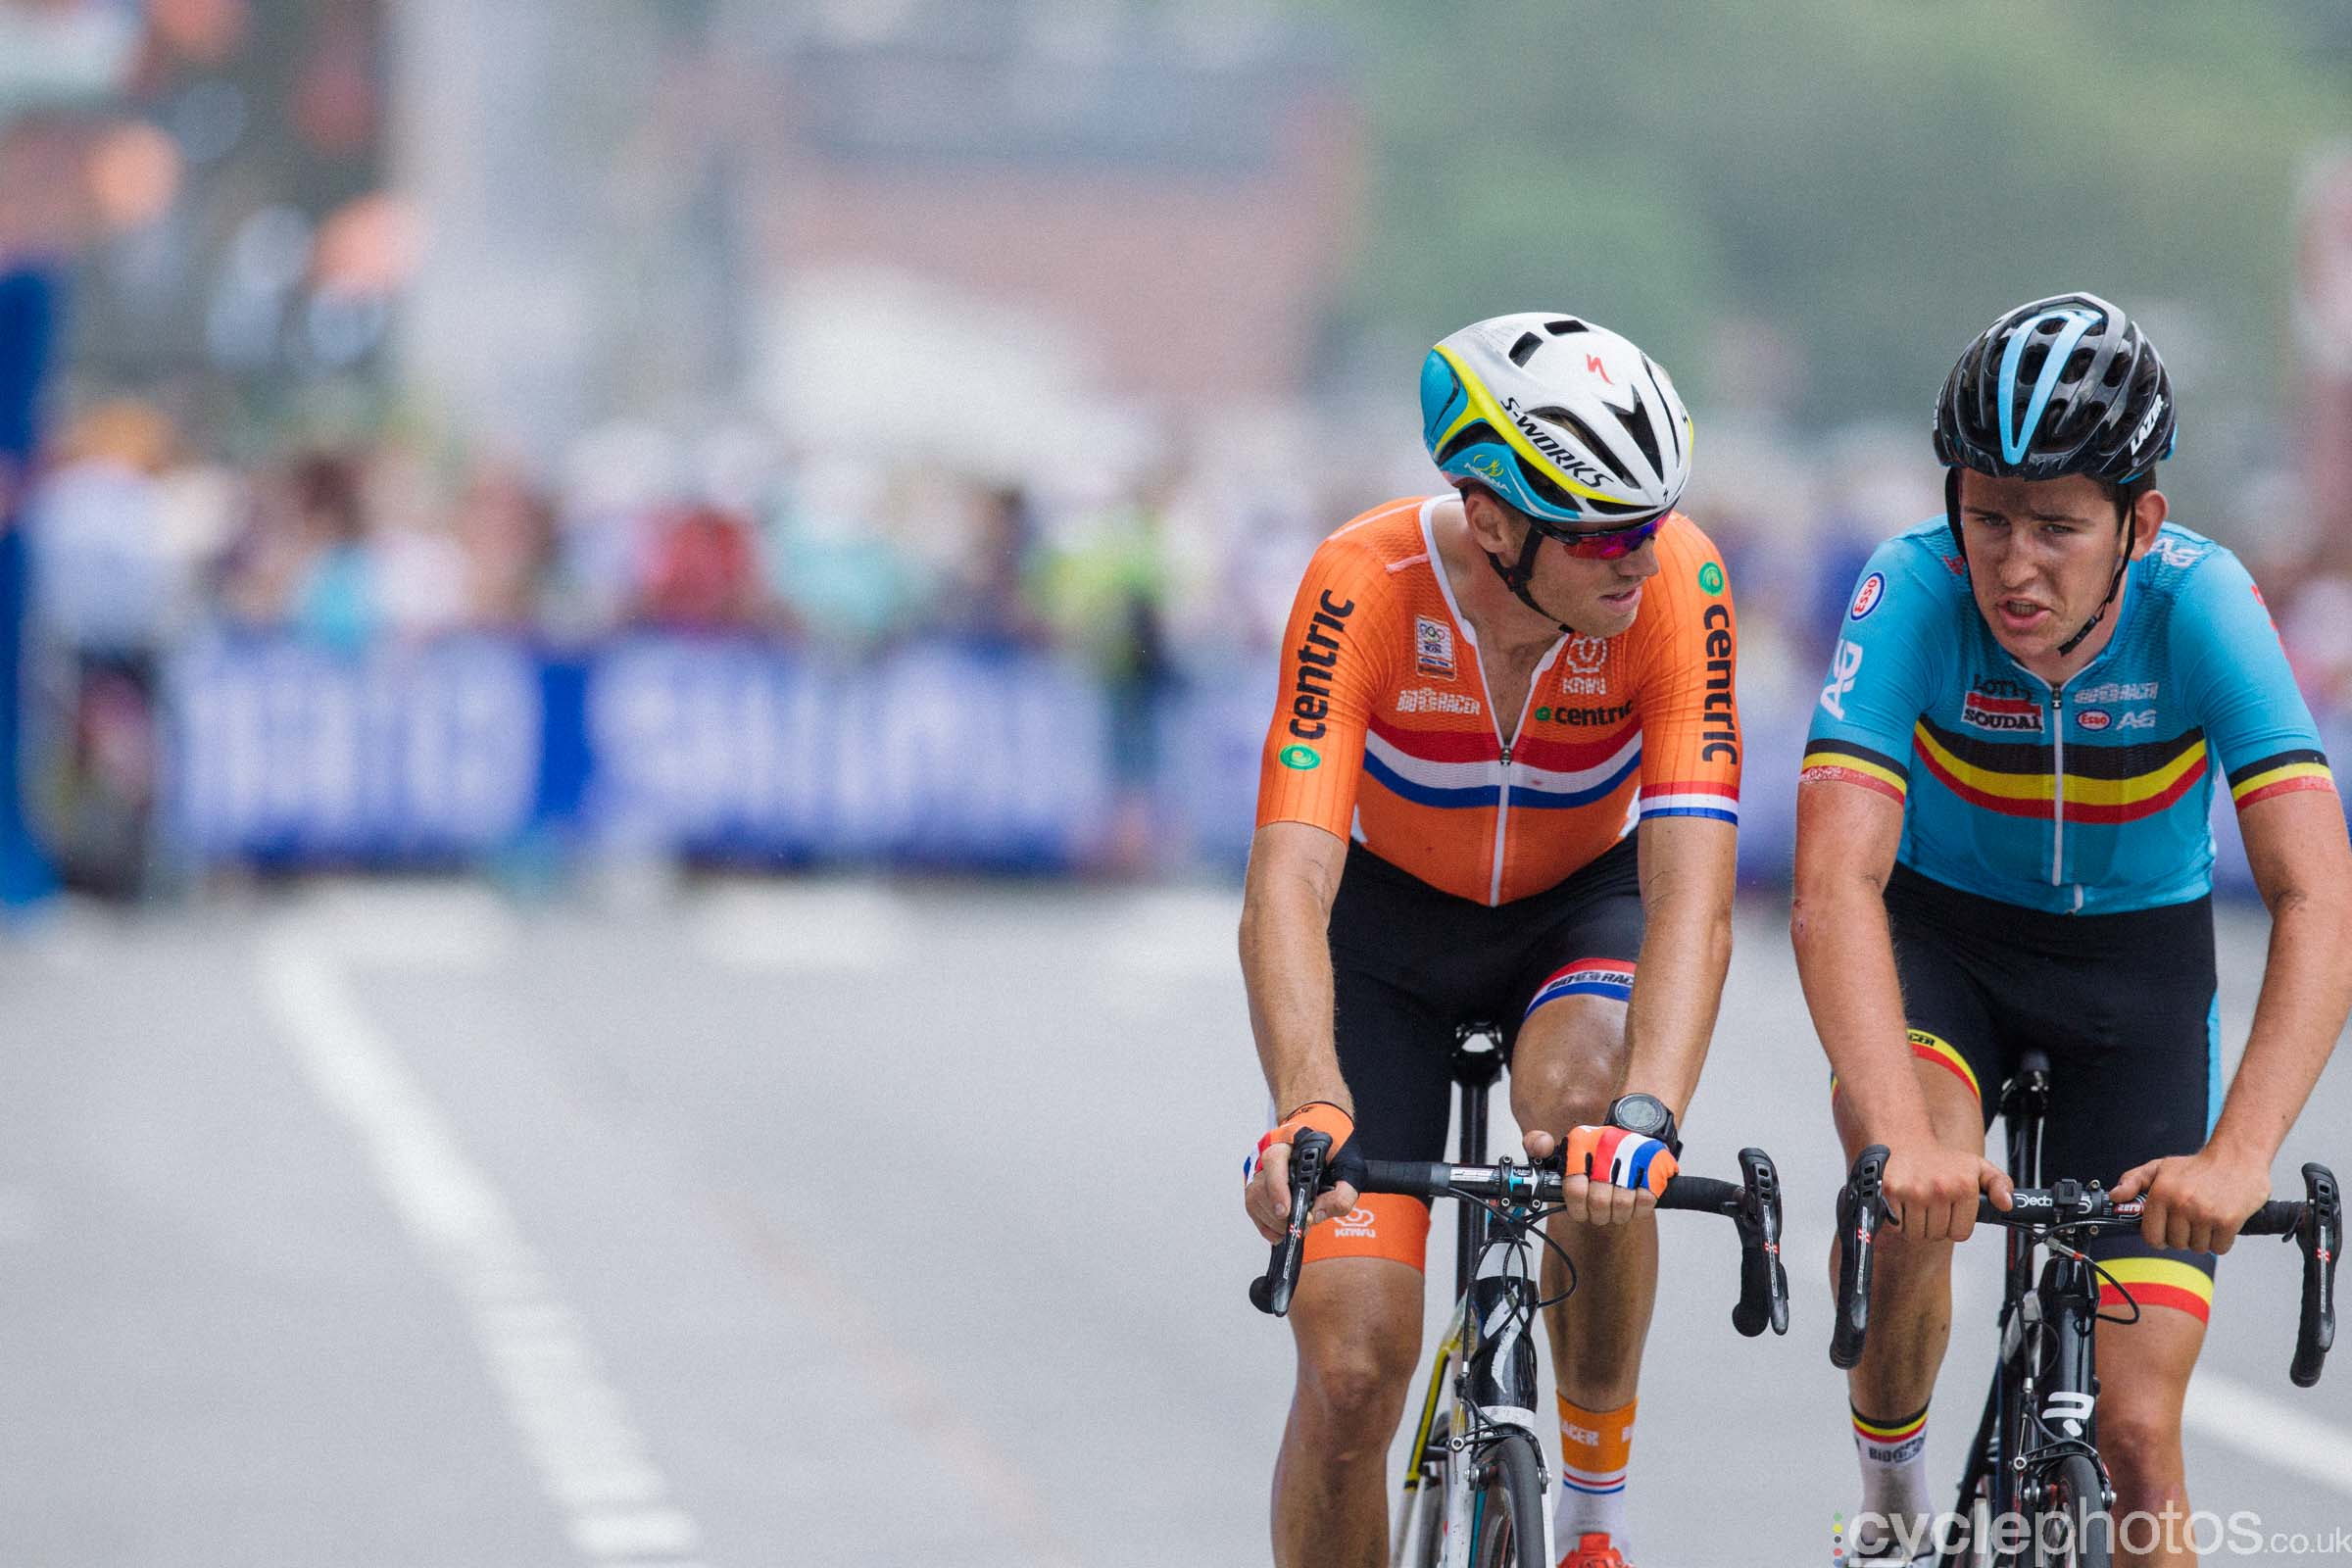 cyclephotos-world-champs-richmond-152522